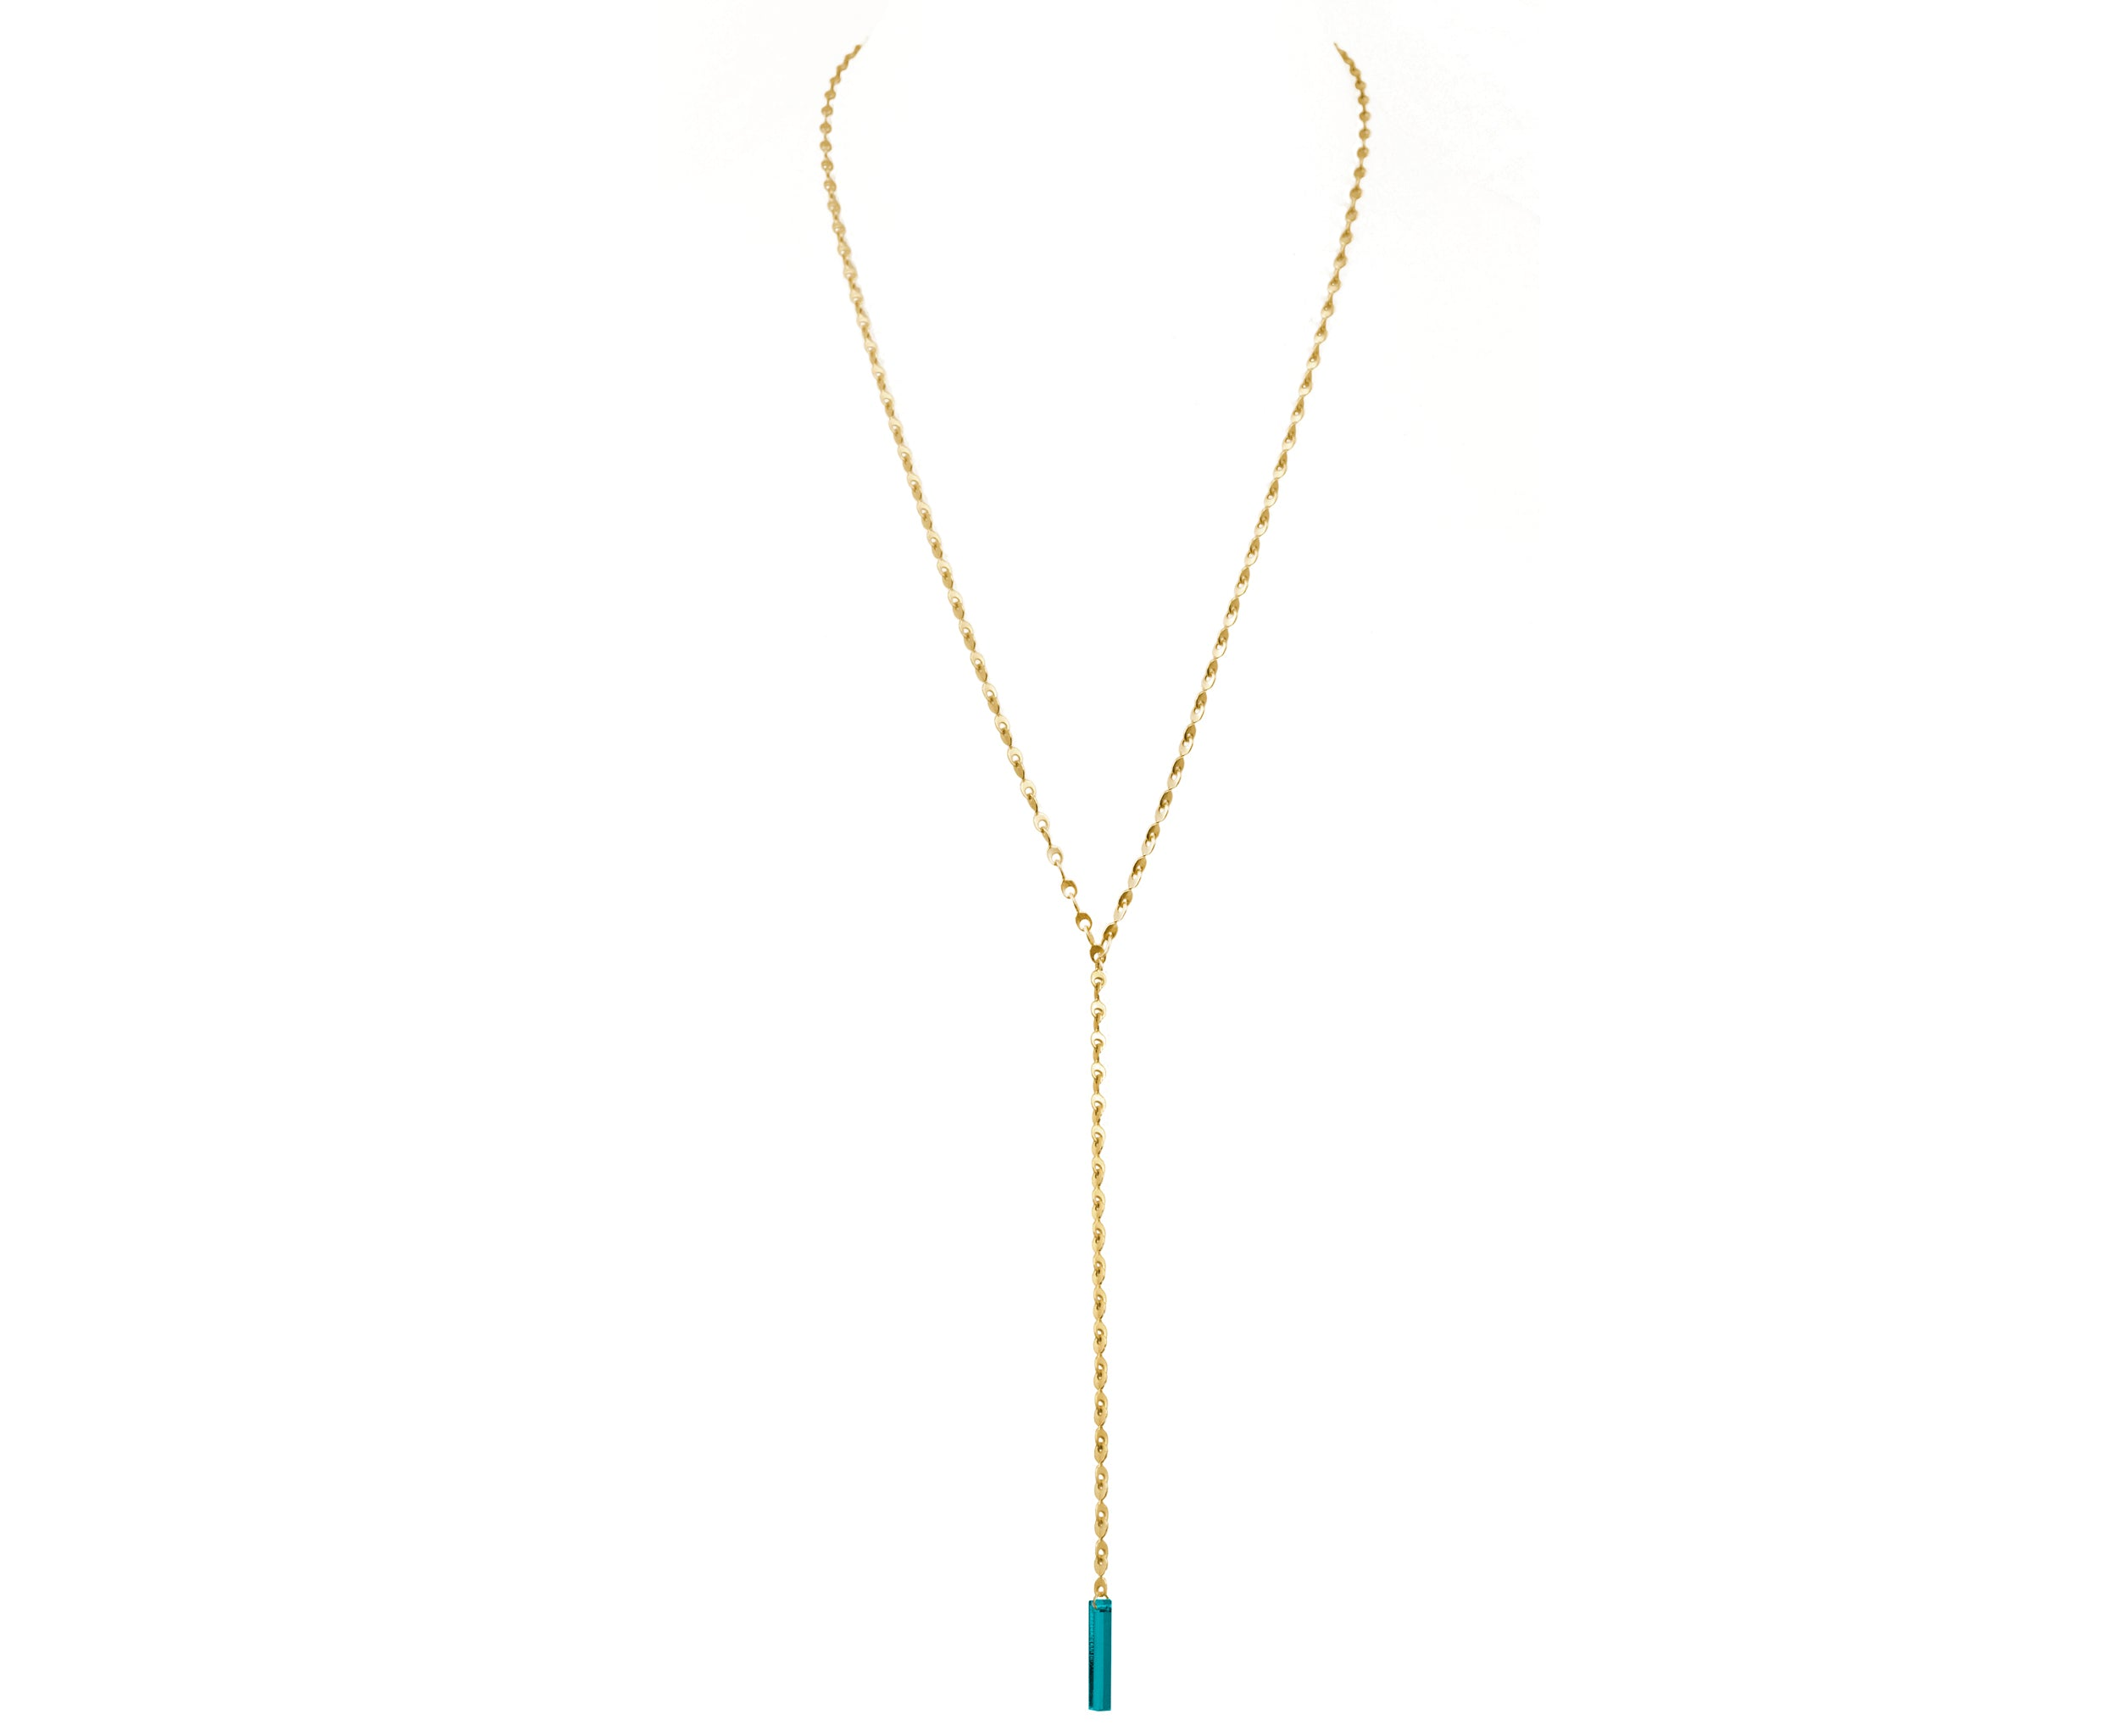 Teal & Gold Eyelet Chain Lariat Necklace